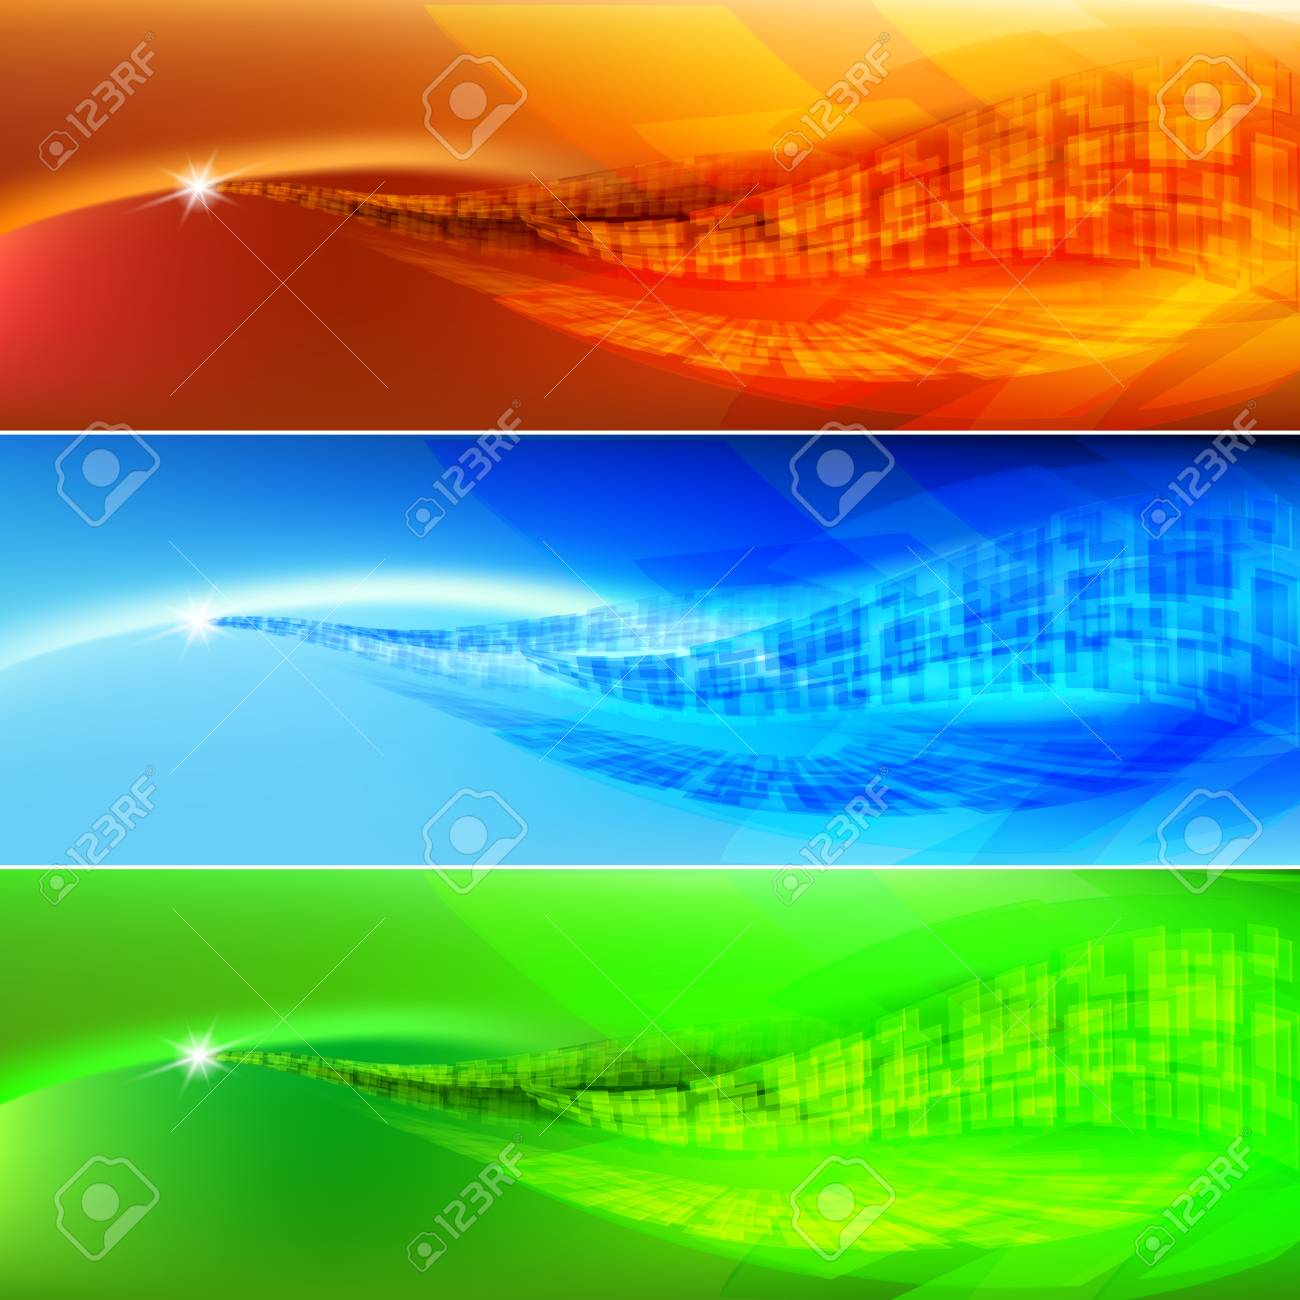 Colored wave abstract background. Illustration for design Stock Vector - 21398002